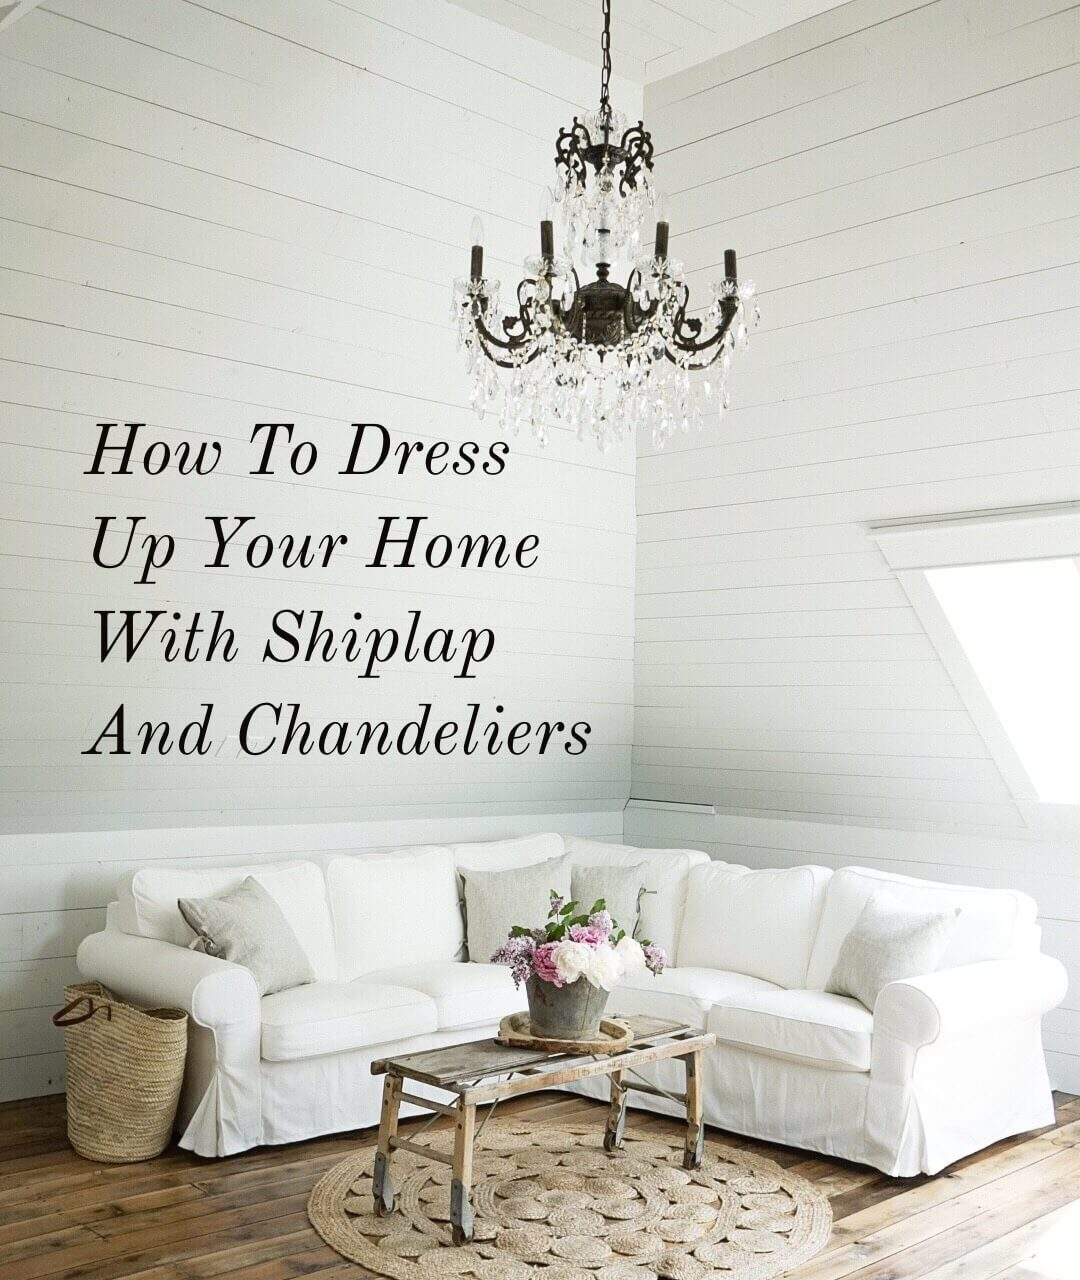 How To Dress Up Your Home With Shiplap And Chandeliers